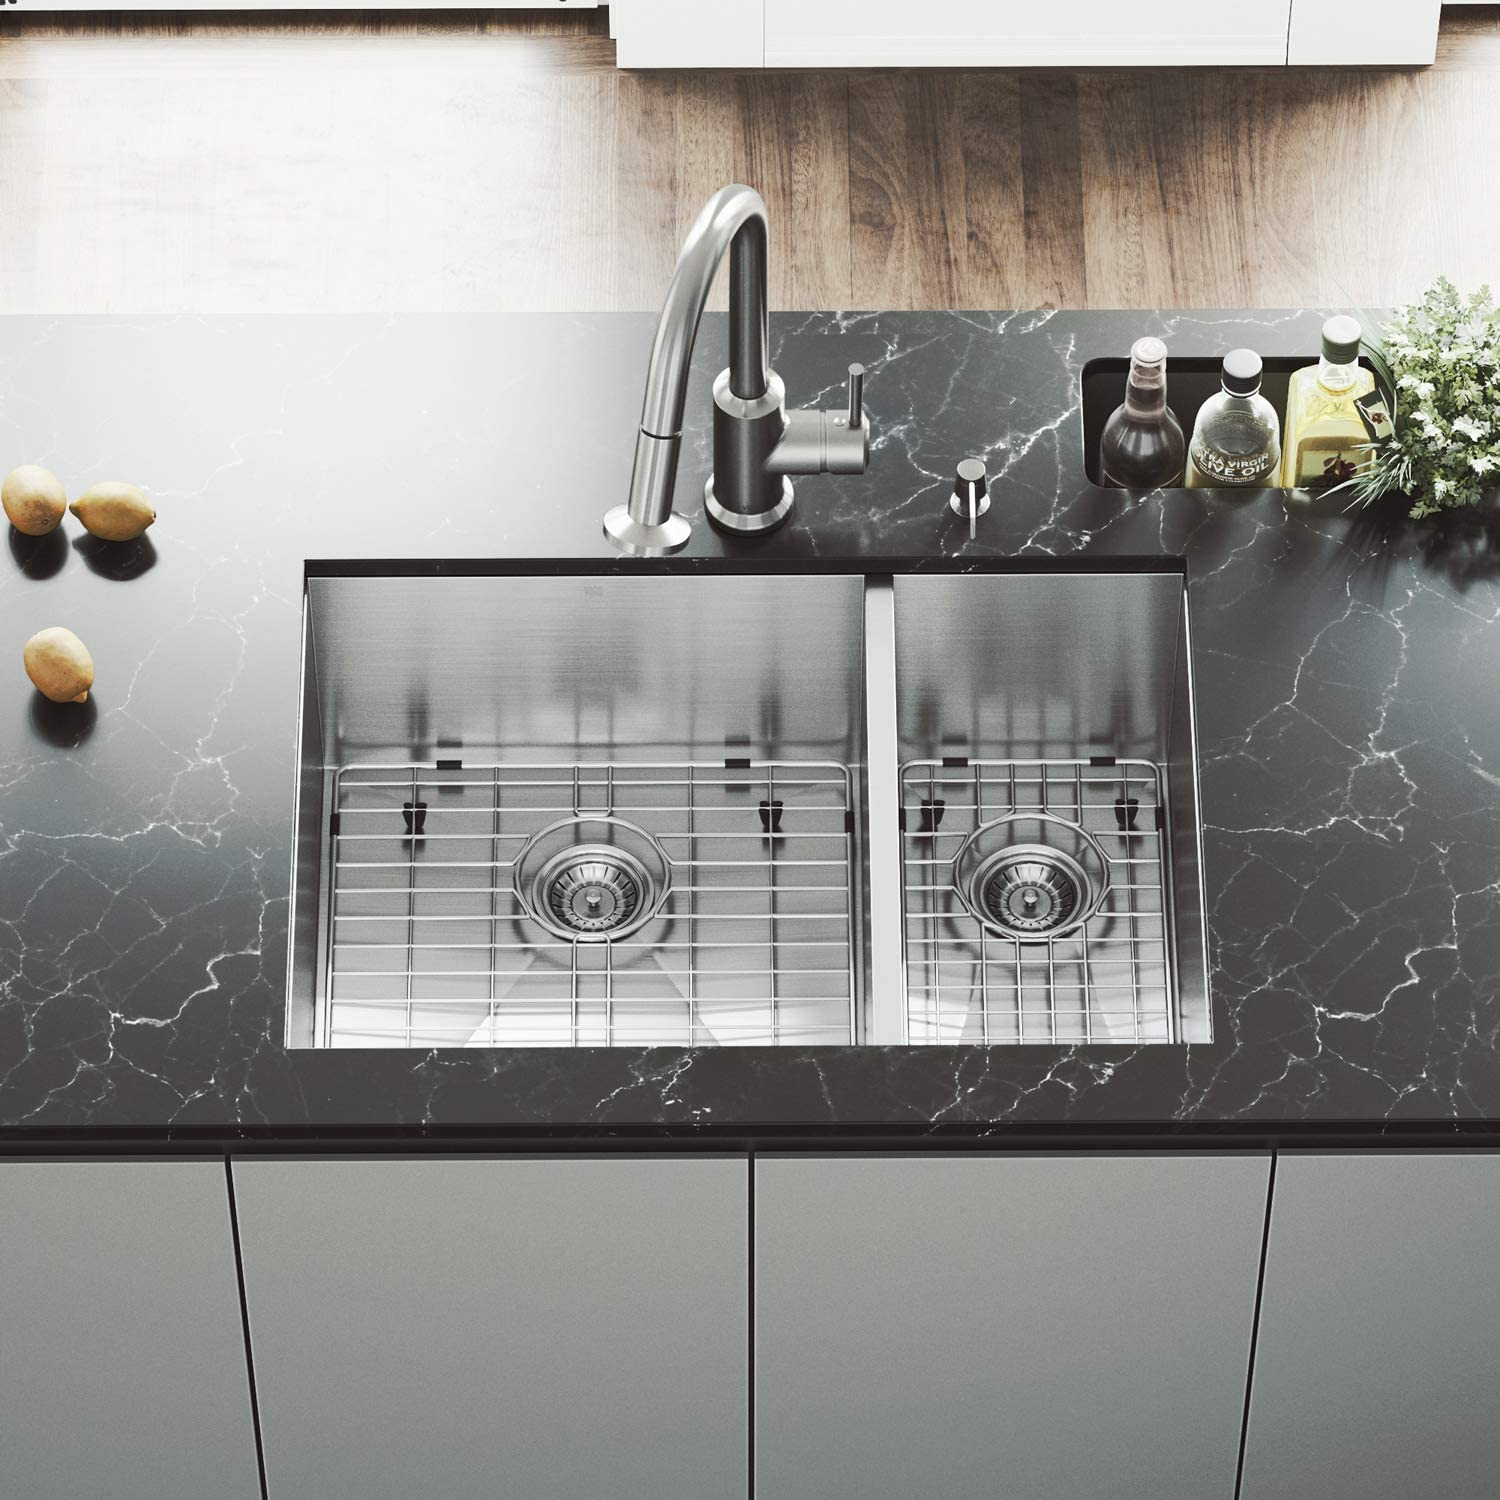 VIGO 29 inch Undermount 70 30 Double Bowl 16 Gauge Stainless Steel Kitchen Sink with Astor Stainless Steel Faucet, Two Grids, Two Strainers and Soap Dispenser